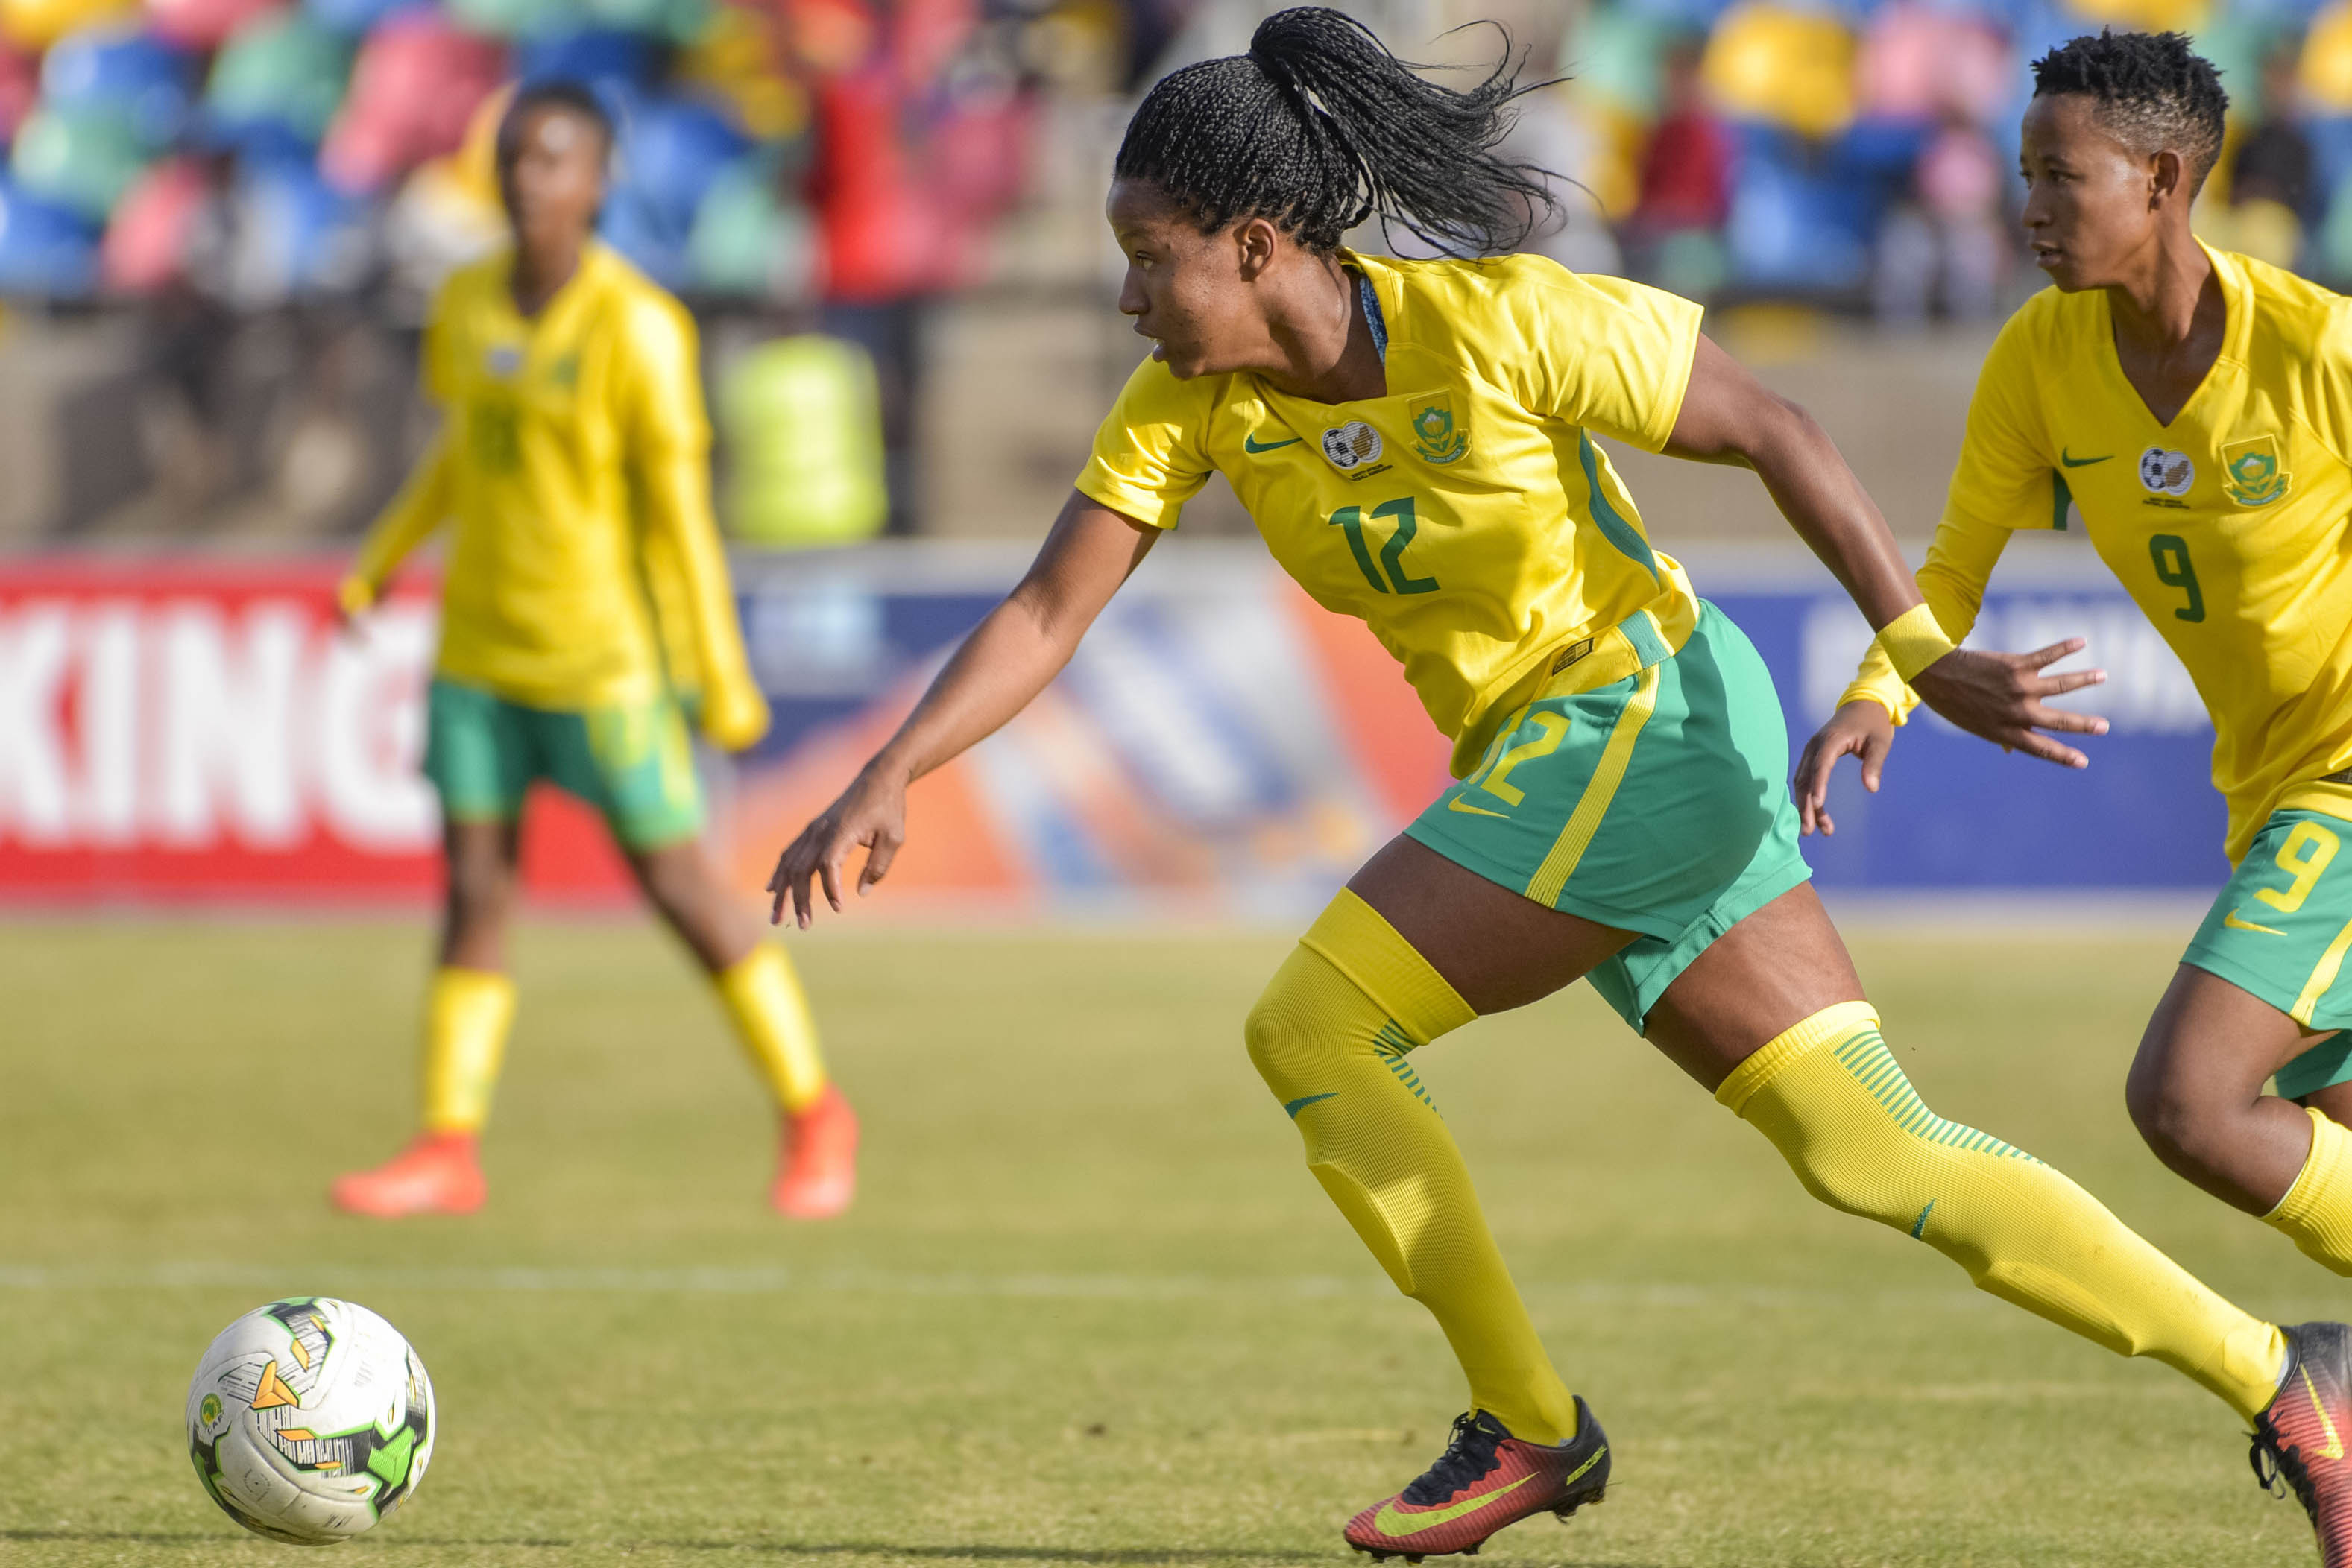 10 June 2018: Jermaine Seoposenwe of Banyana Banyana during the CAF Women's Nations Cup qualifier 2nd Leg match between South Africa and Lesotho at Dr Petrus Molemela Stadium in Bloemfontein. (Photo by Frikkie Kapp/Gallo Images)